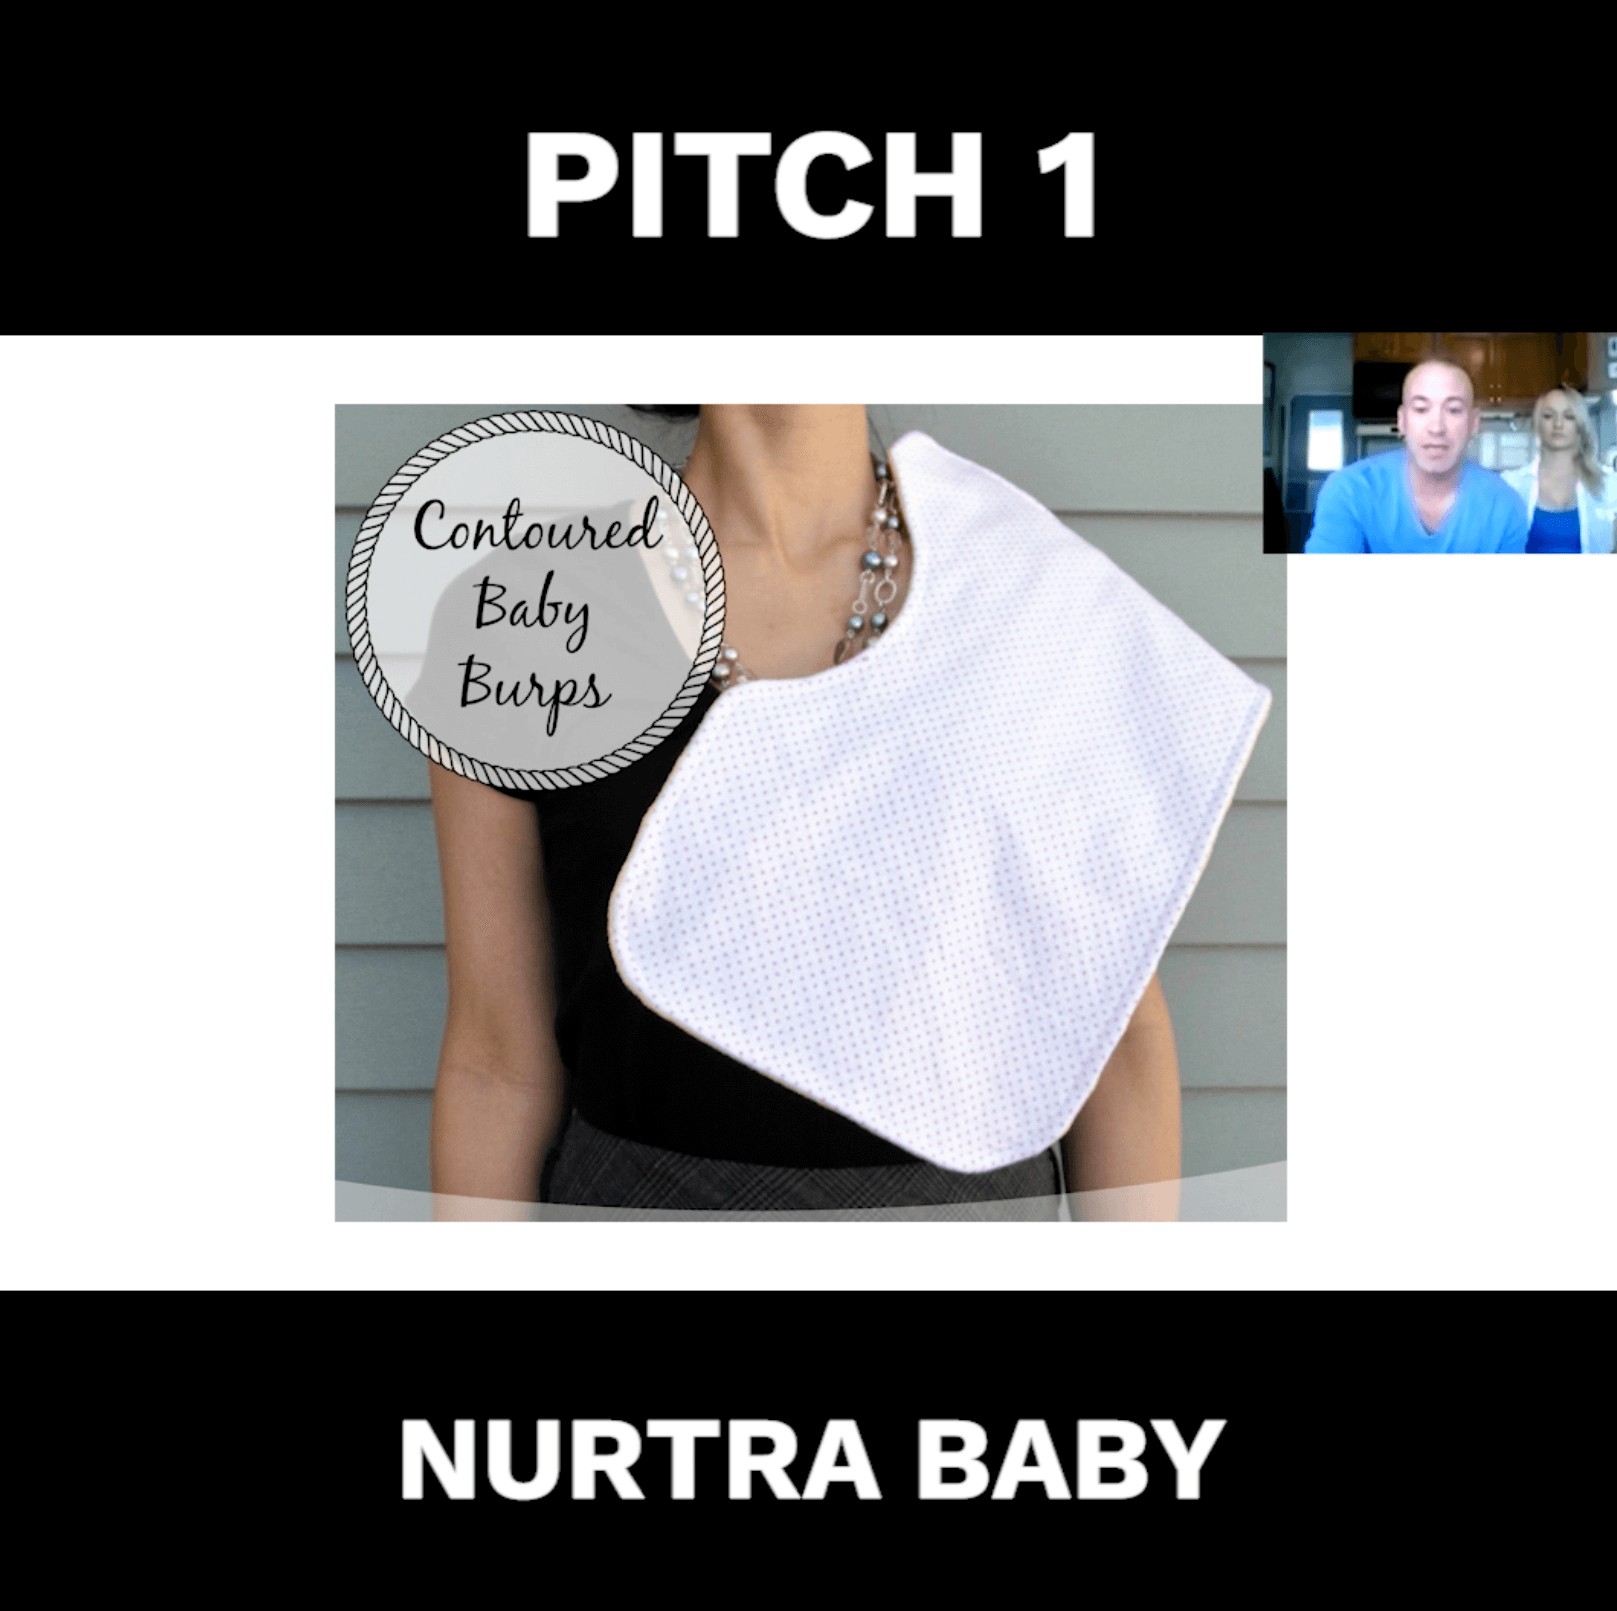 Go Pitch Win Episode 16